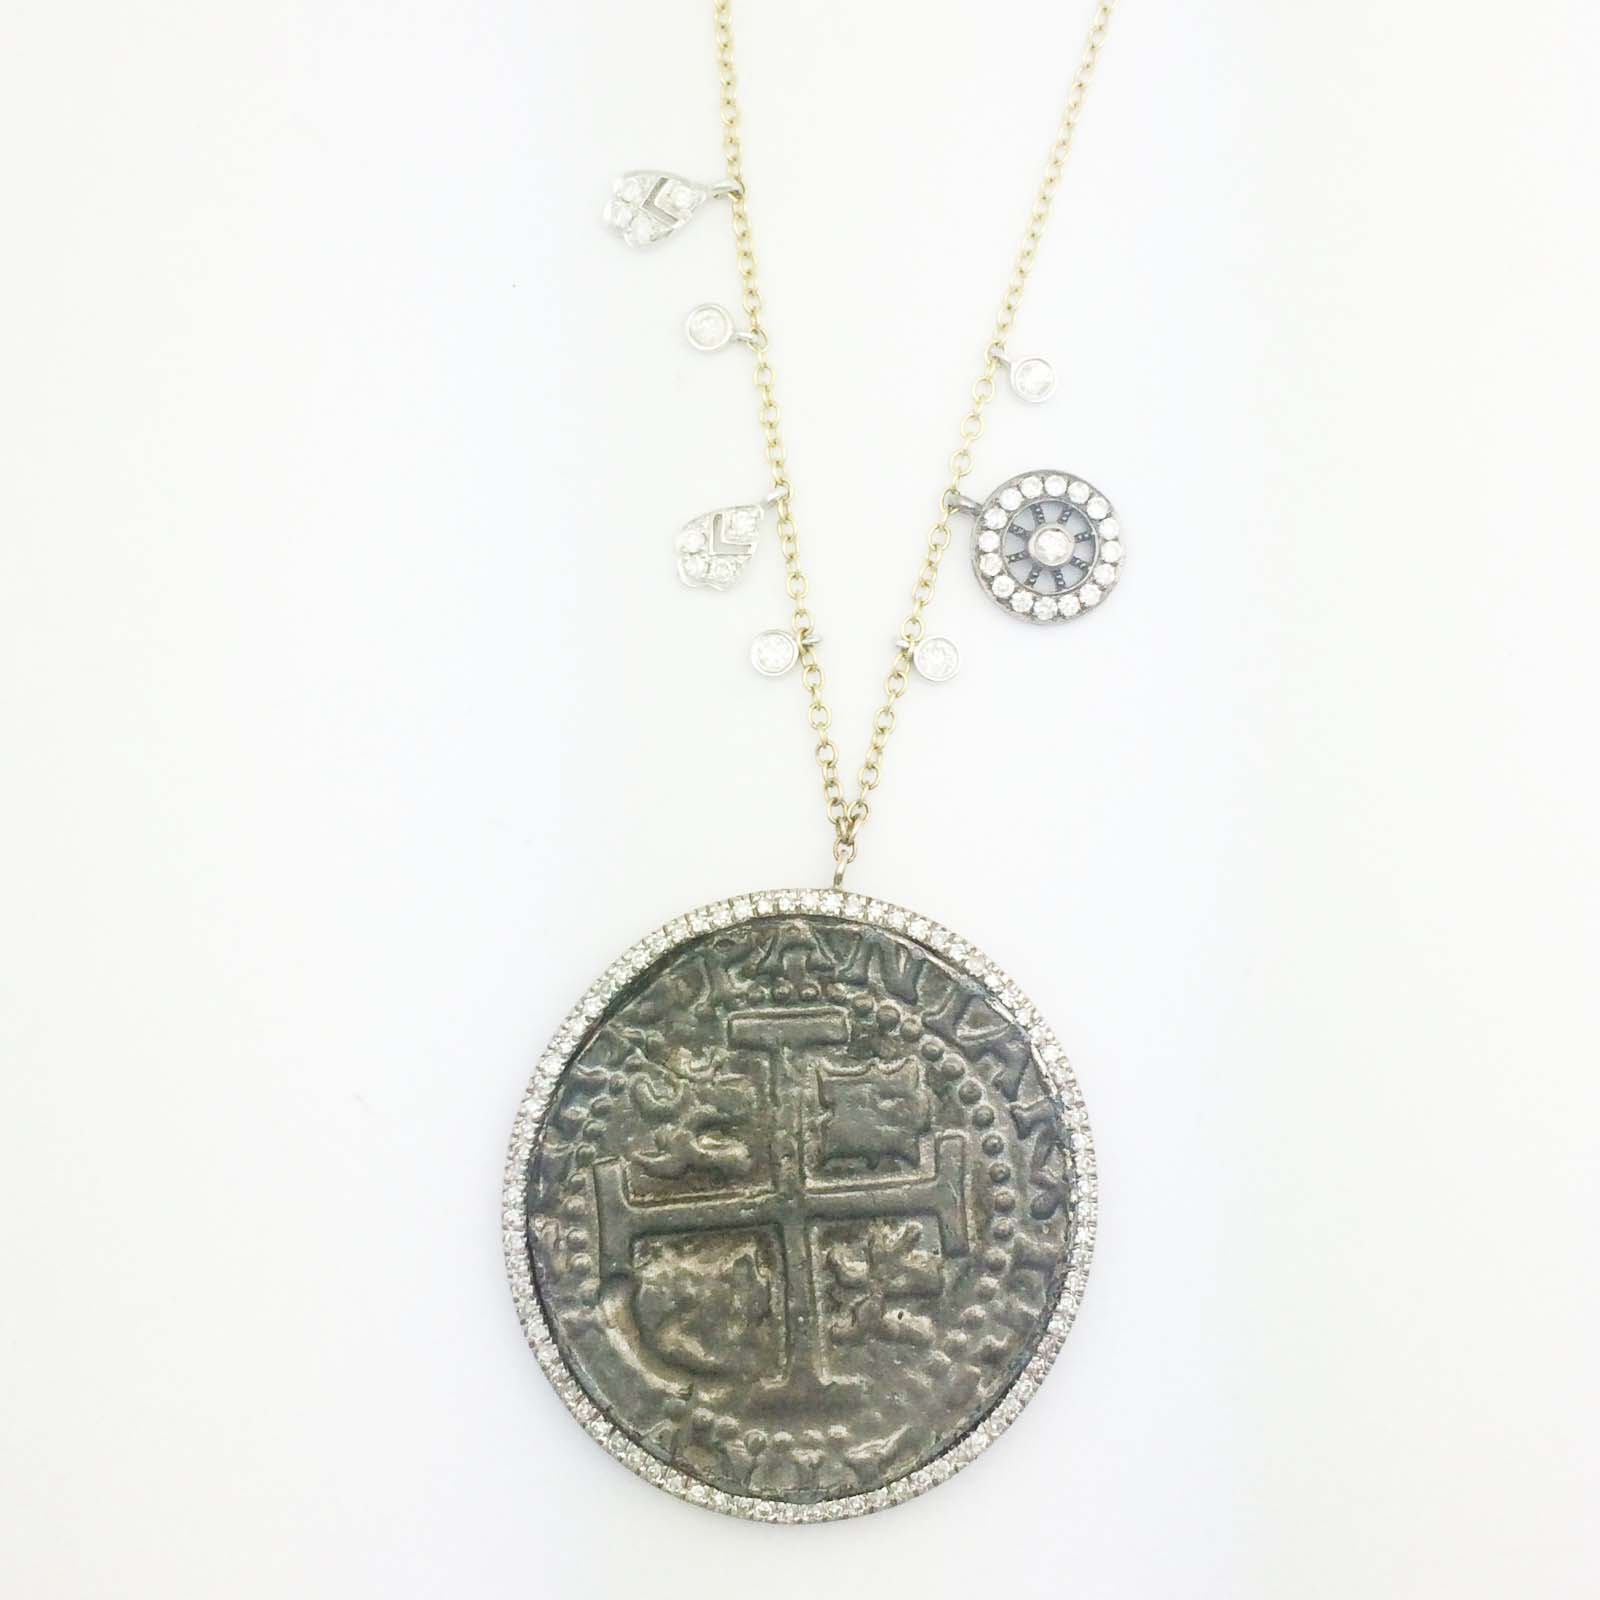 18k large silver coin necklace with diamond accents